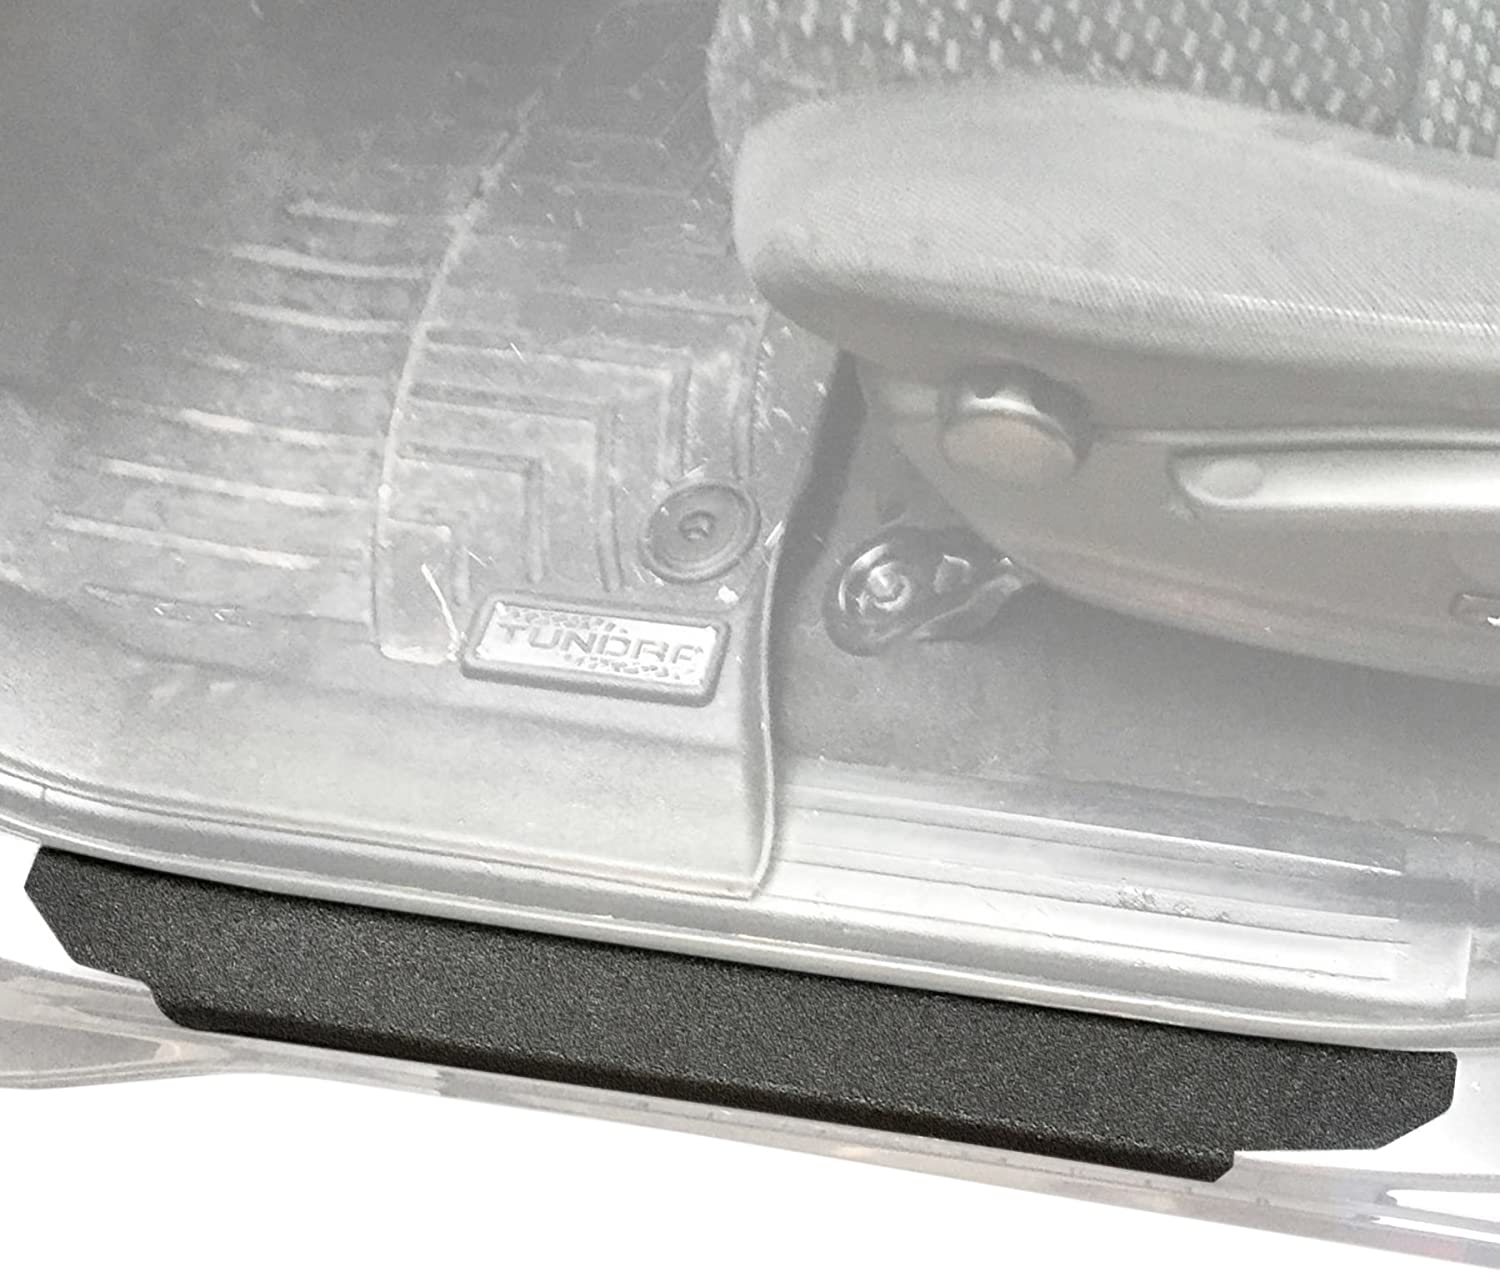 Red Hound Auto Door Entry Scratch 2007-2013 Shield Compat Guards Max 57% OFF mart